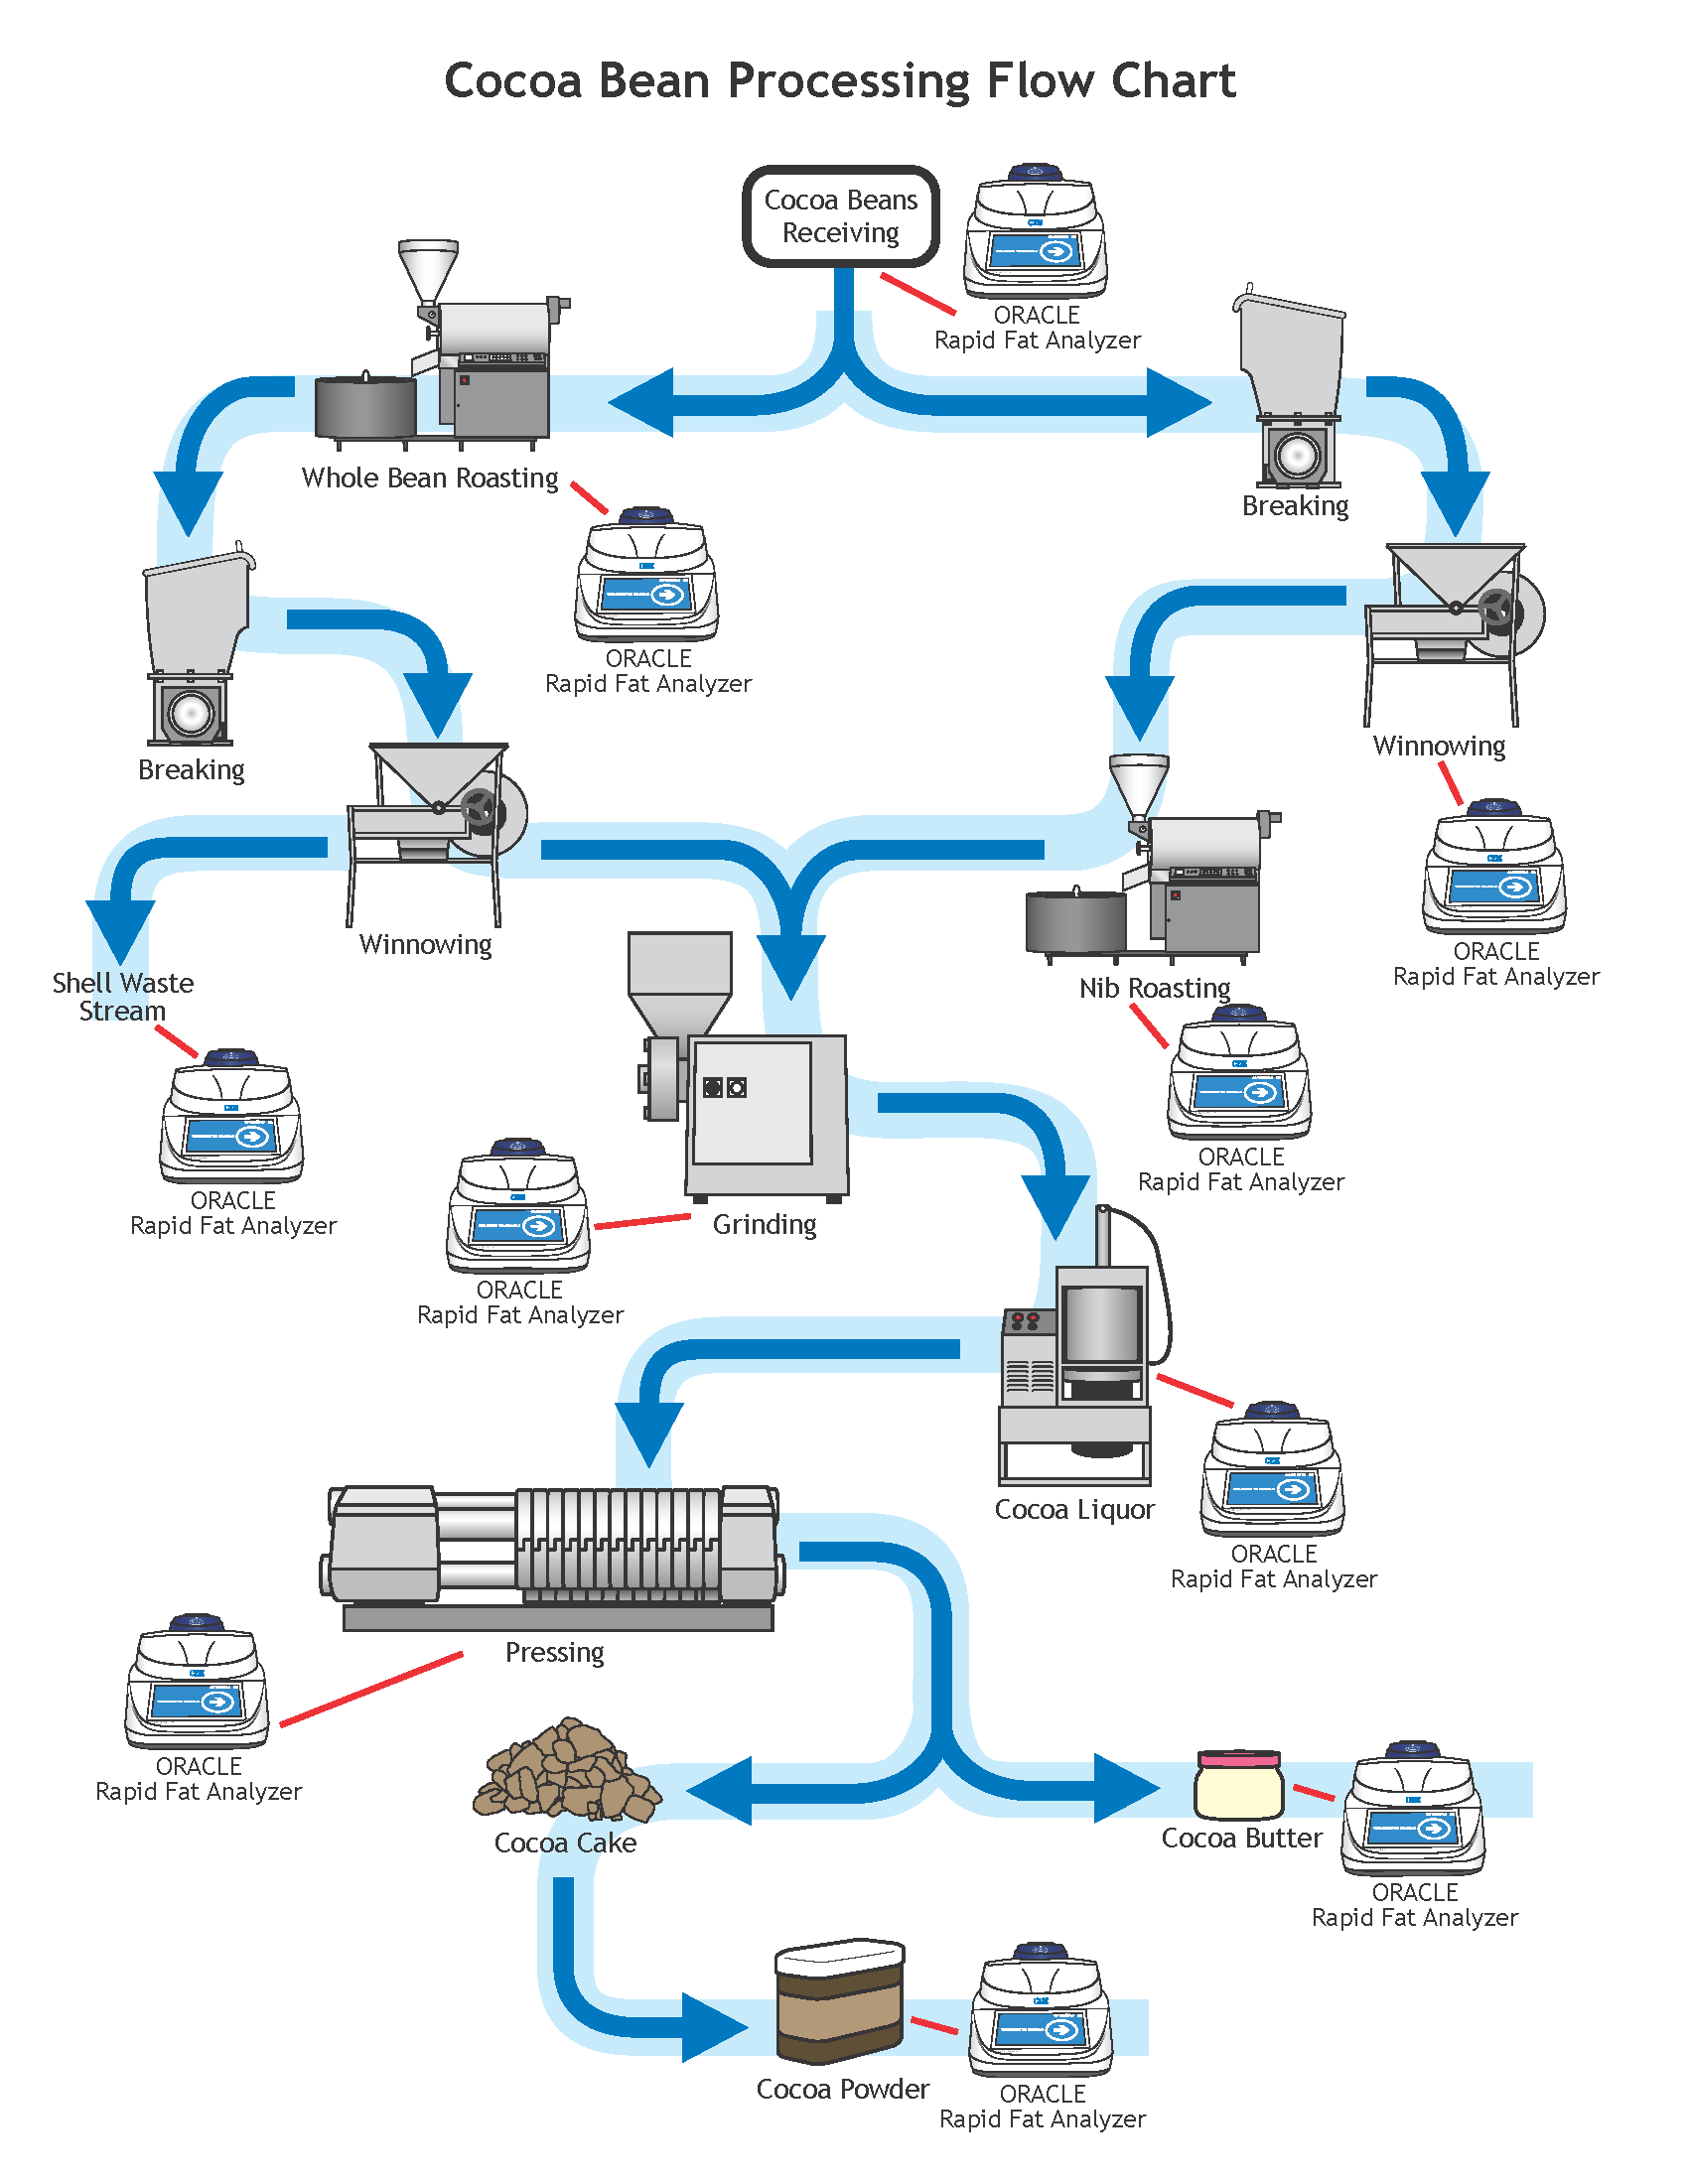 Literature Process Flow Diagram Gold Mining Chart Butter Production February 9 2017